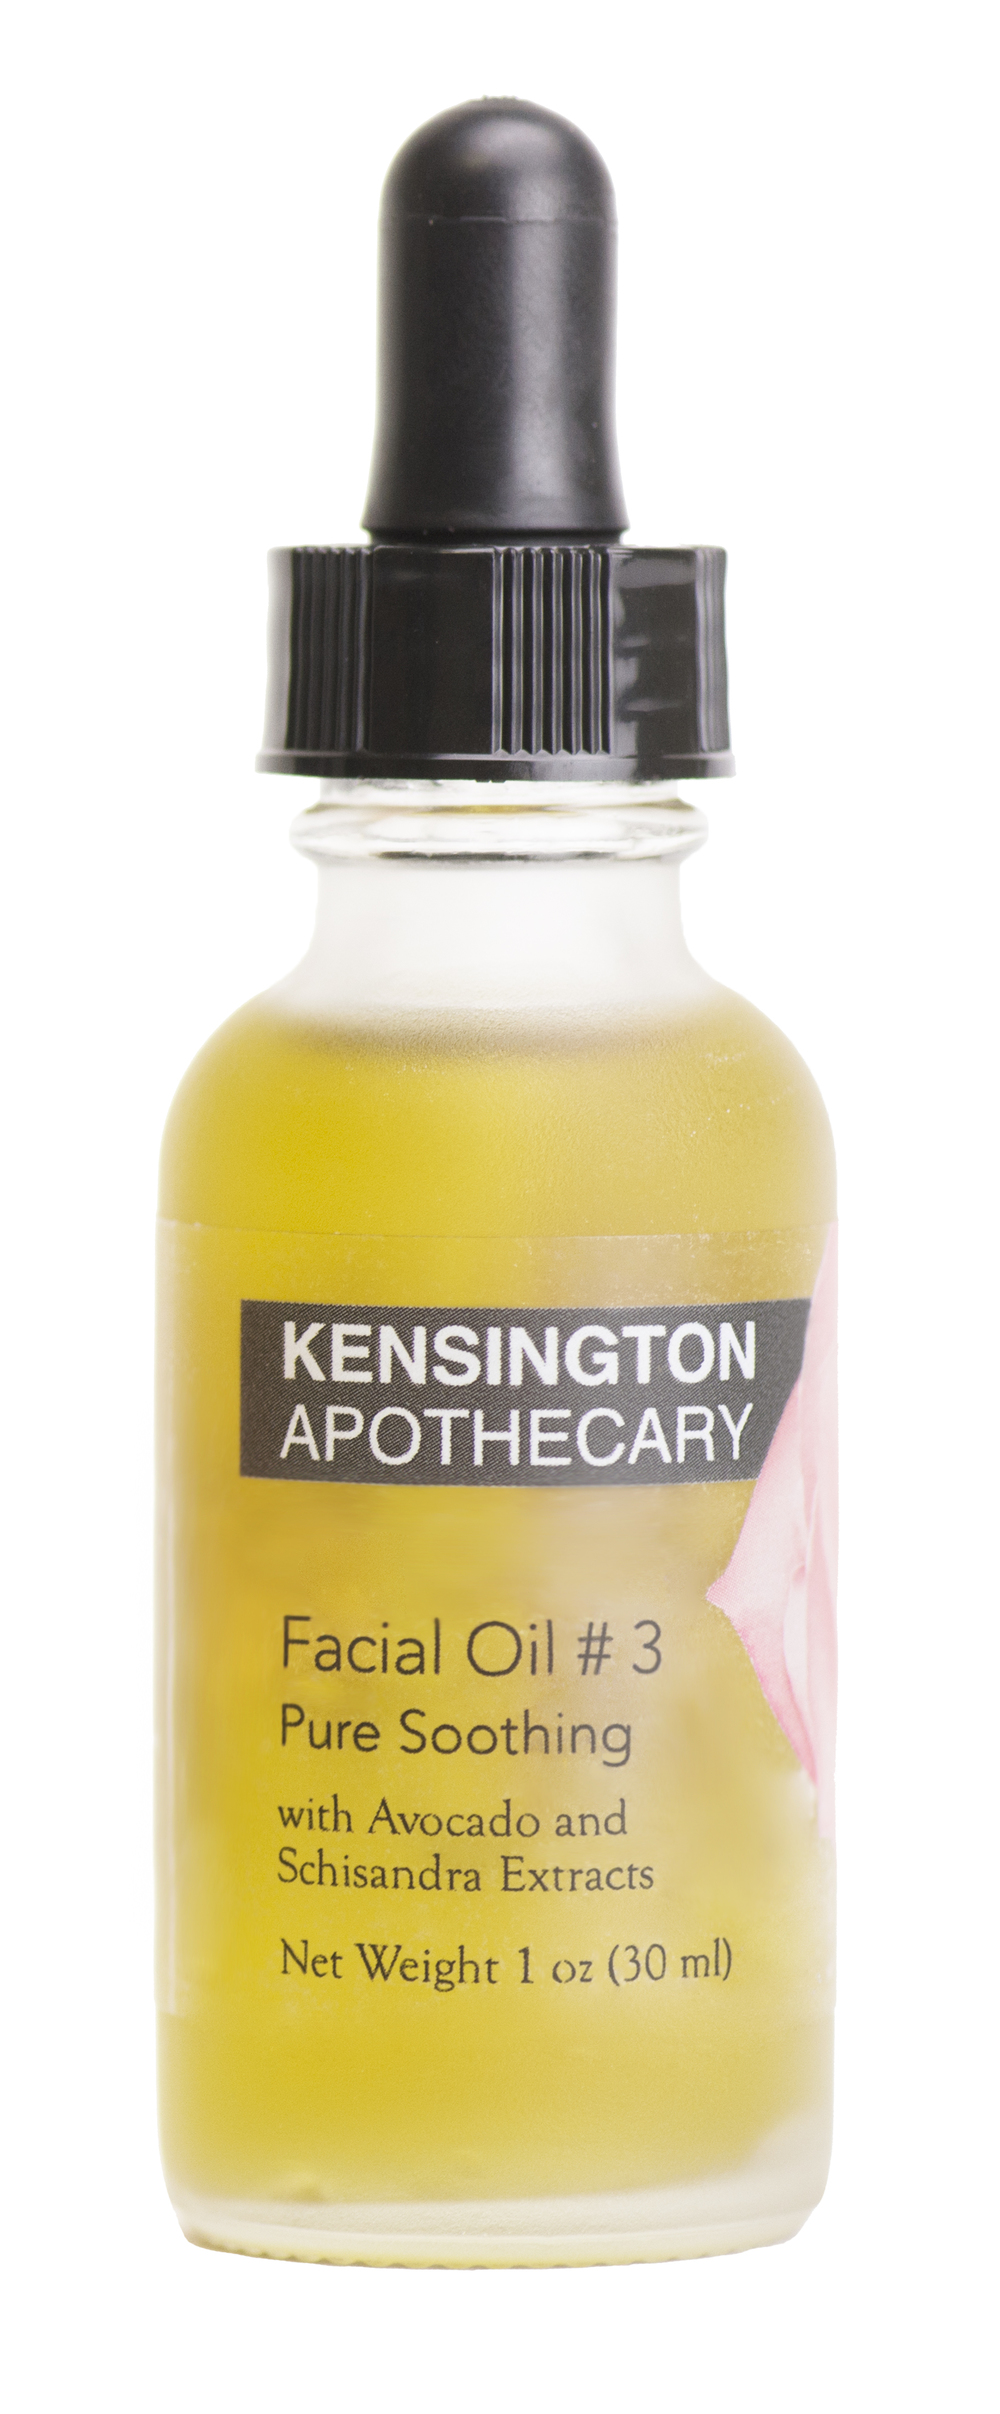 KA_FacialOil3bottle.jpg